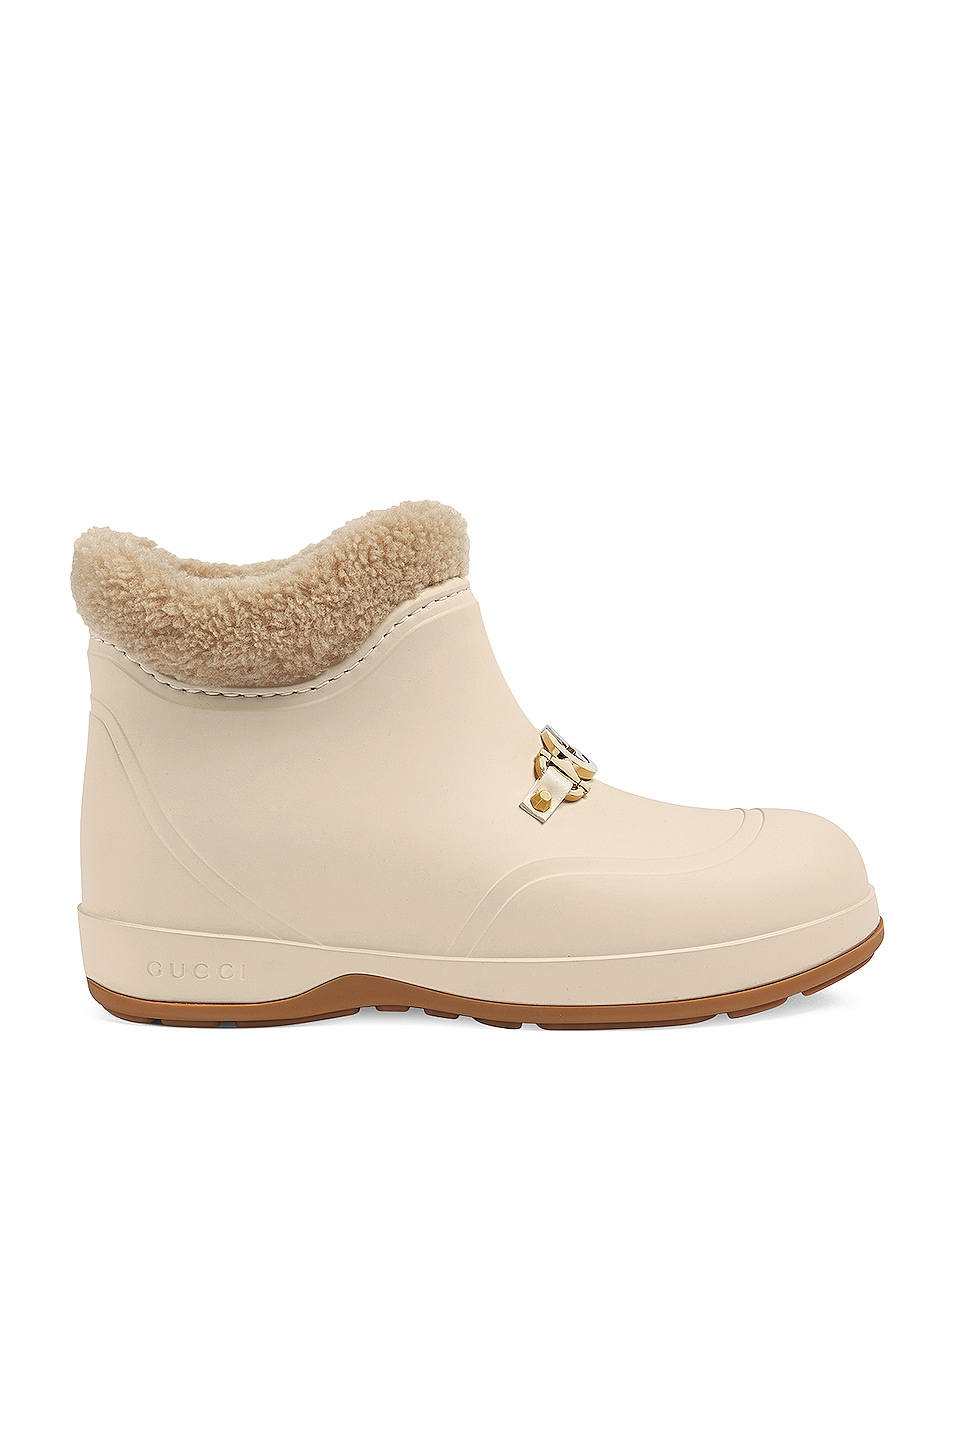 Image 1 of Gucci Crossy Rubber Booties in Mystic White